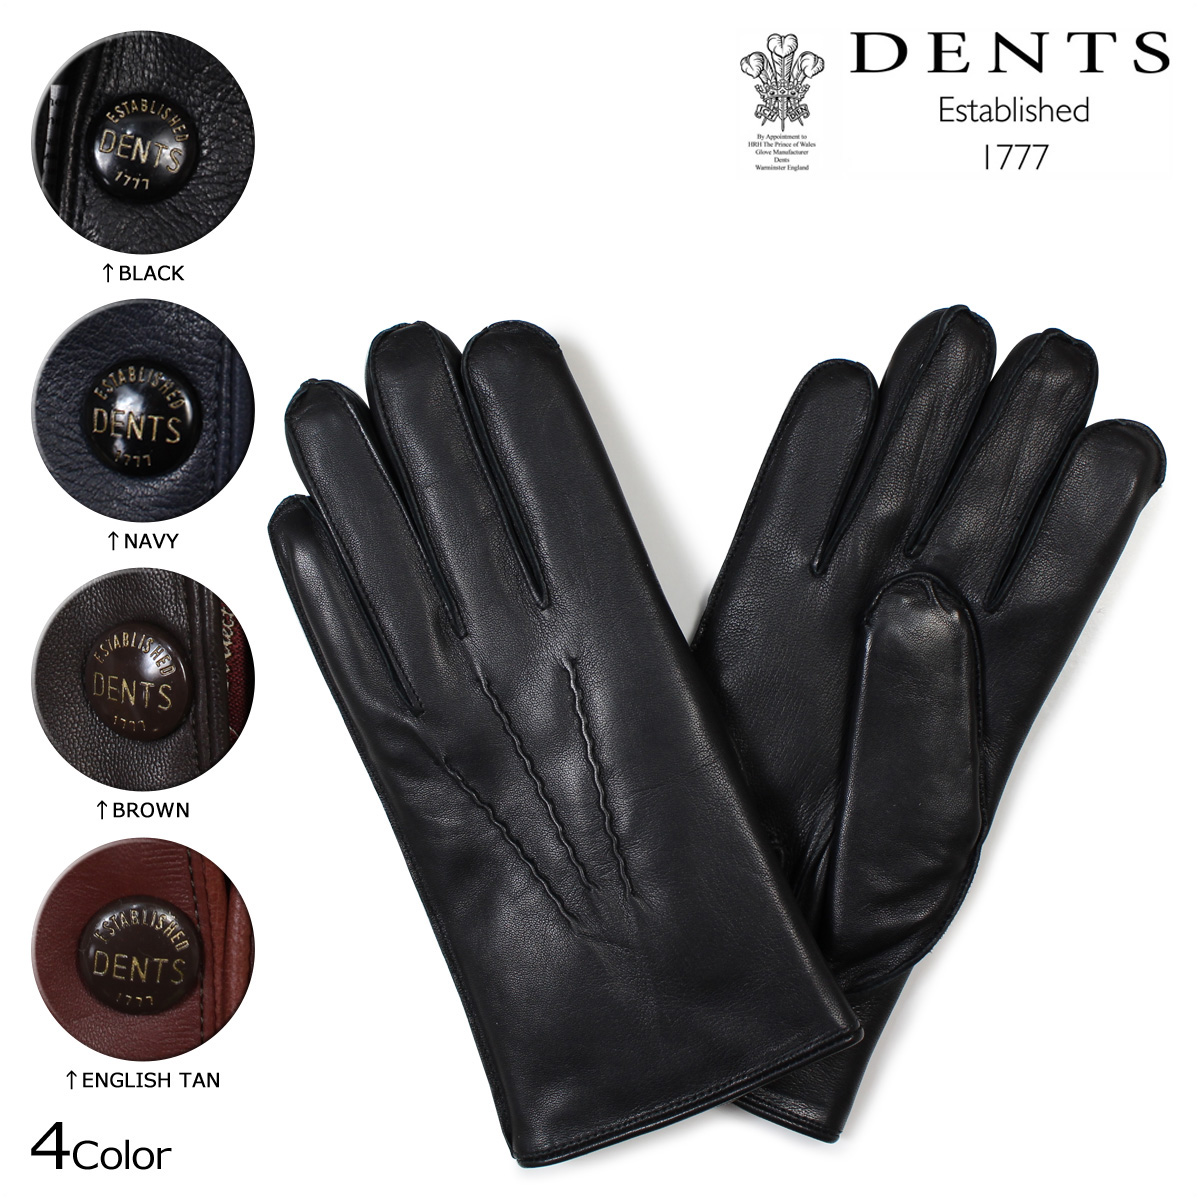 Mens leather gloves dents - Dents Gloves Mens Leather Gloves Dents Leather Gloves Lnd Fur 15 1590 11